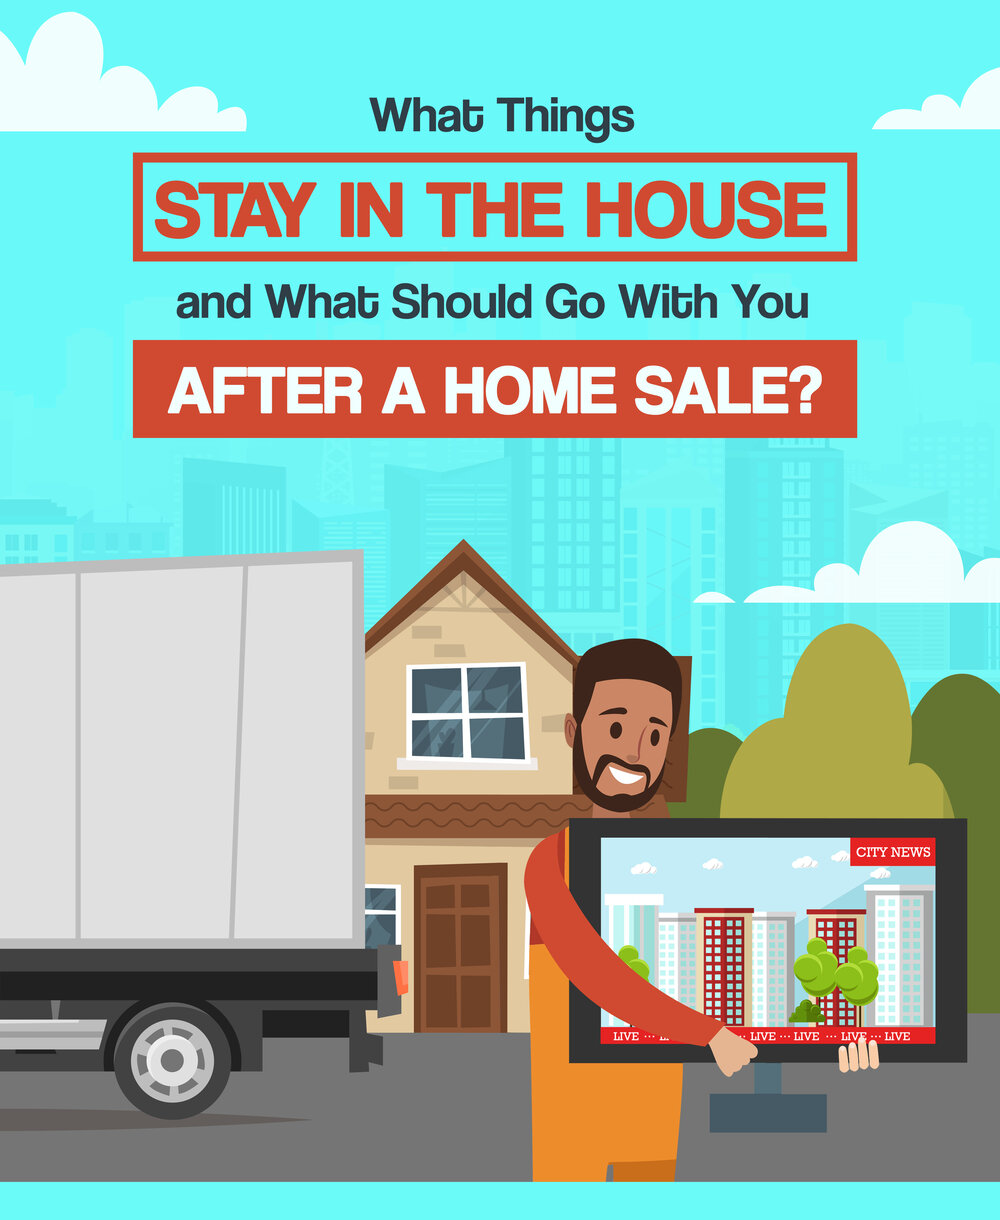 What Things Stay in the House and What Should Go With You After A Home Sale?